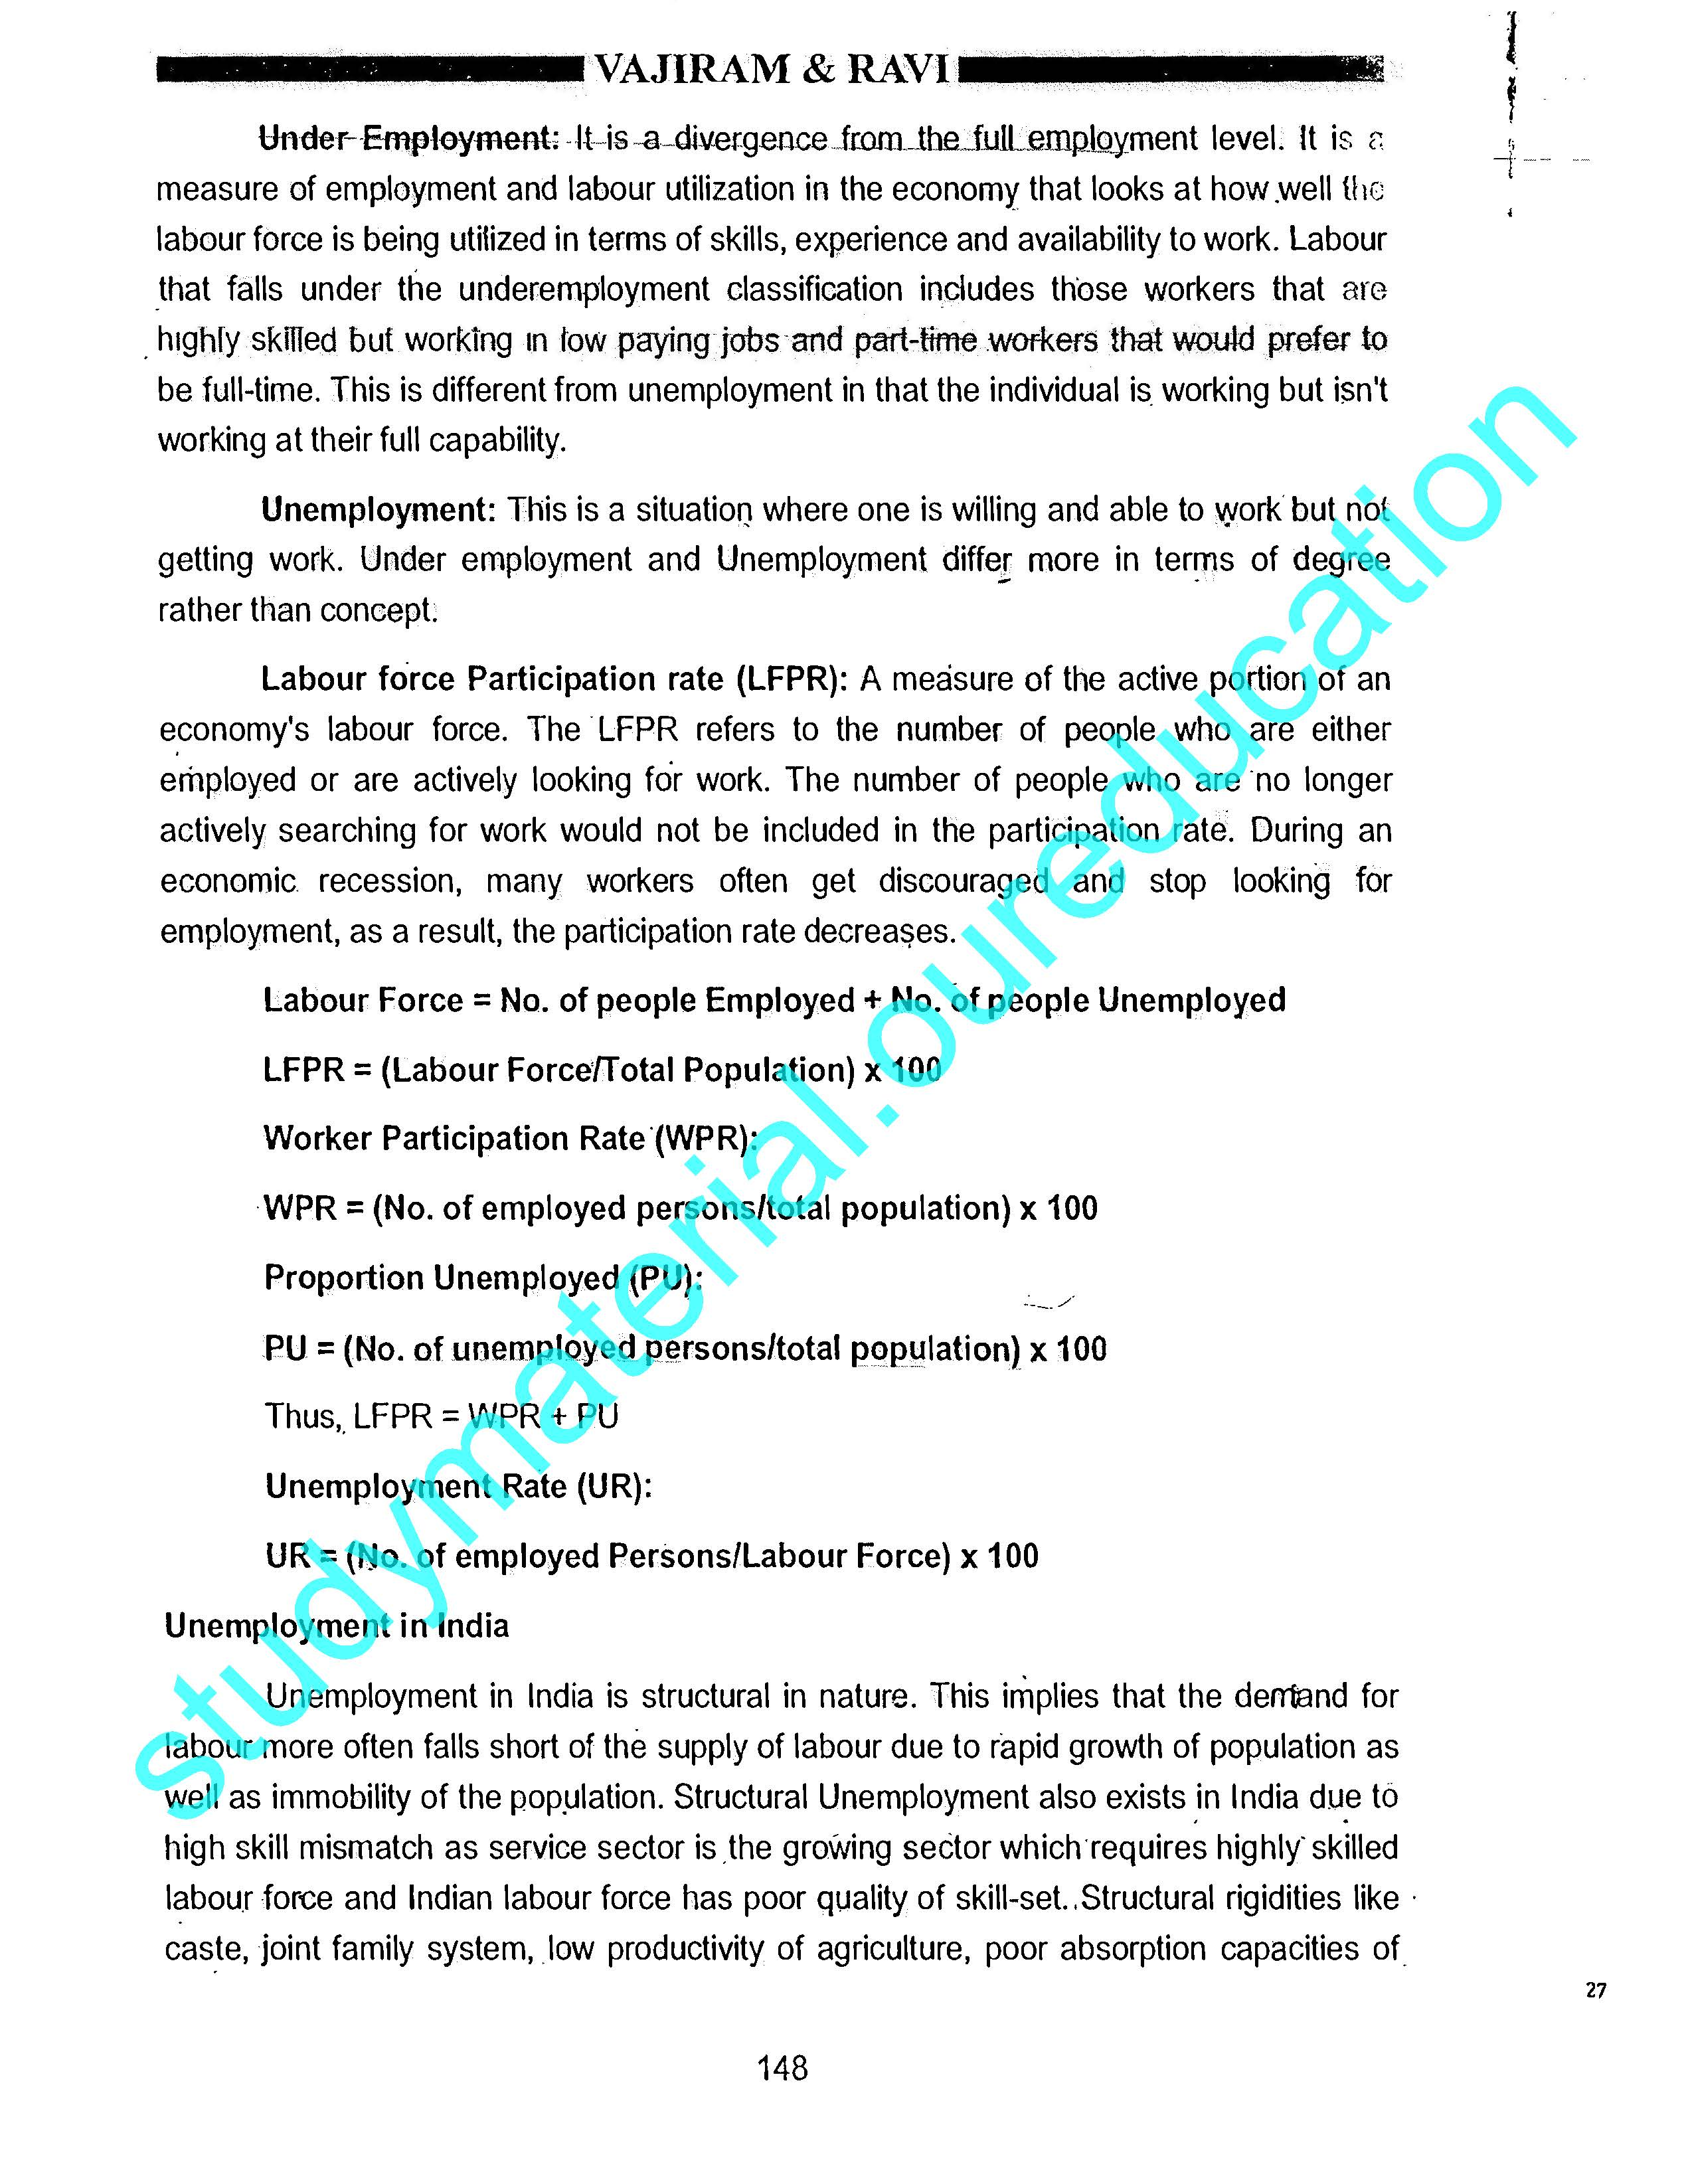 General Studies Printed notes-Vajiram and Ravi -yellow books for IAS Mains  and PT Examination